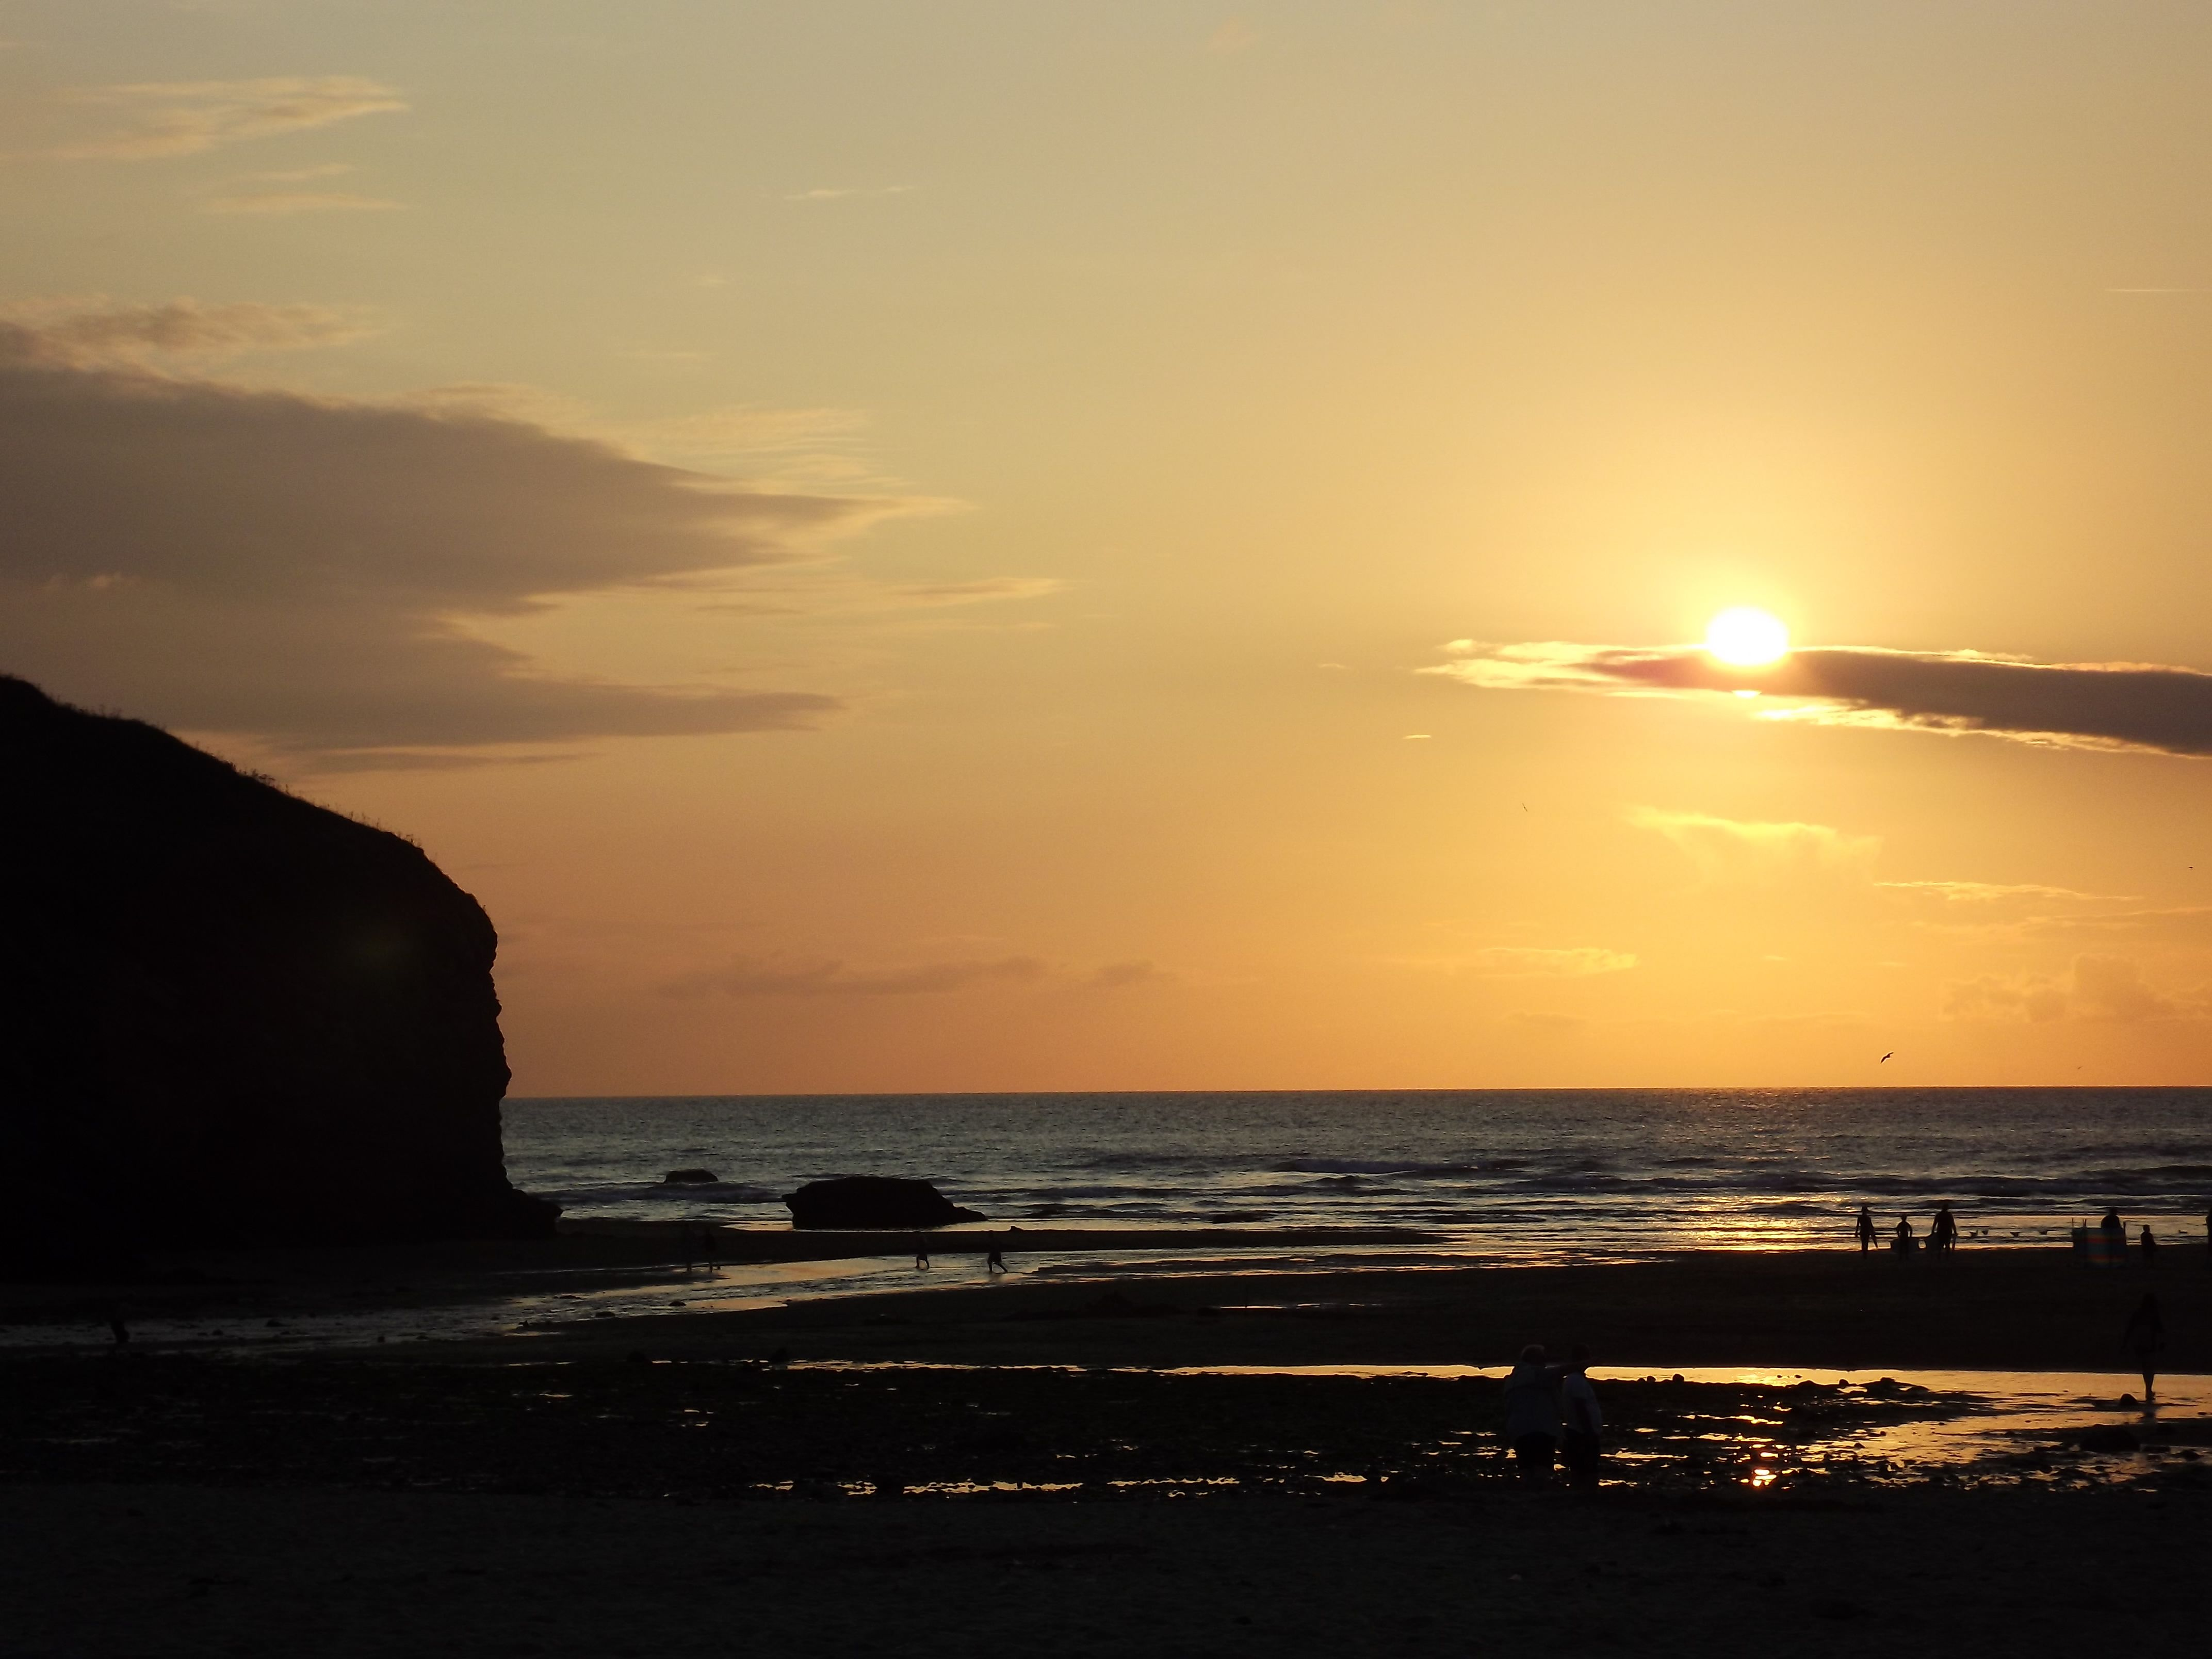 A sunset photo at my favourite beach, Mawgan Porth in Cornwall UK.